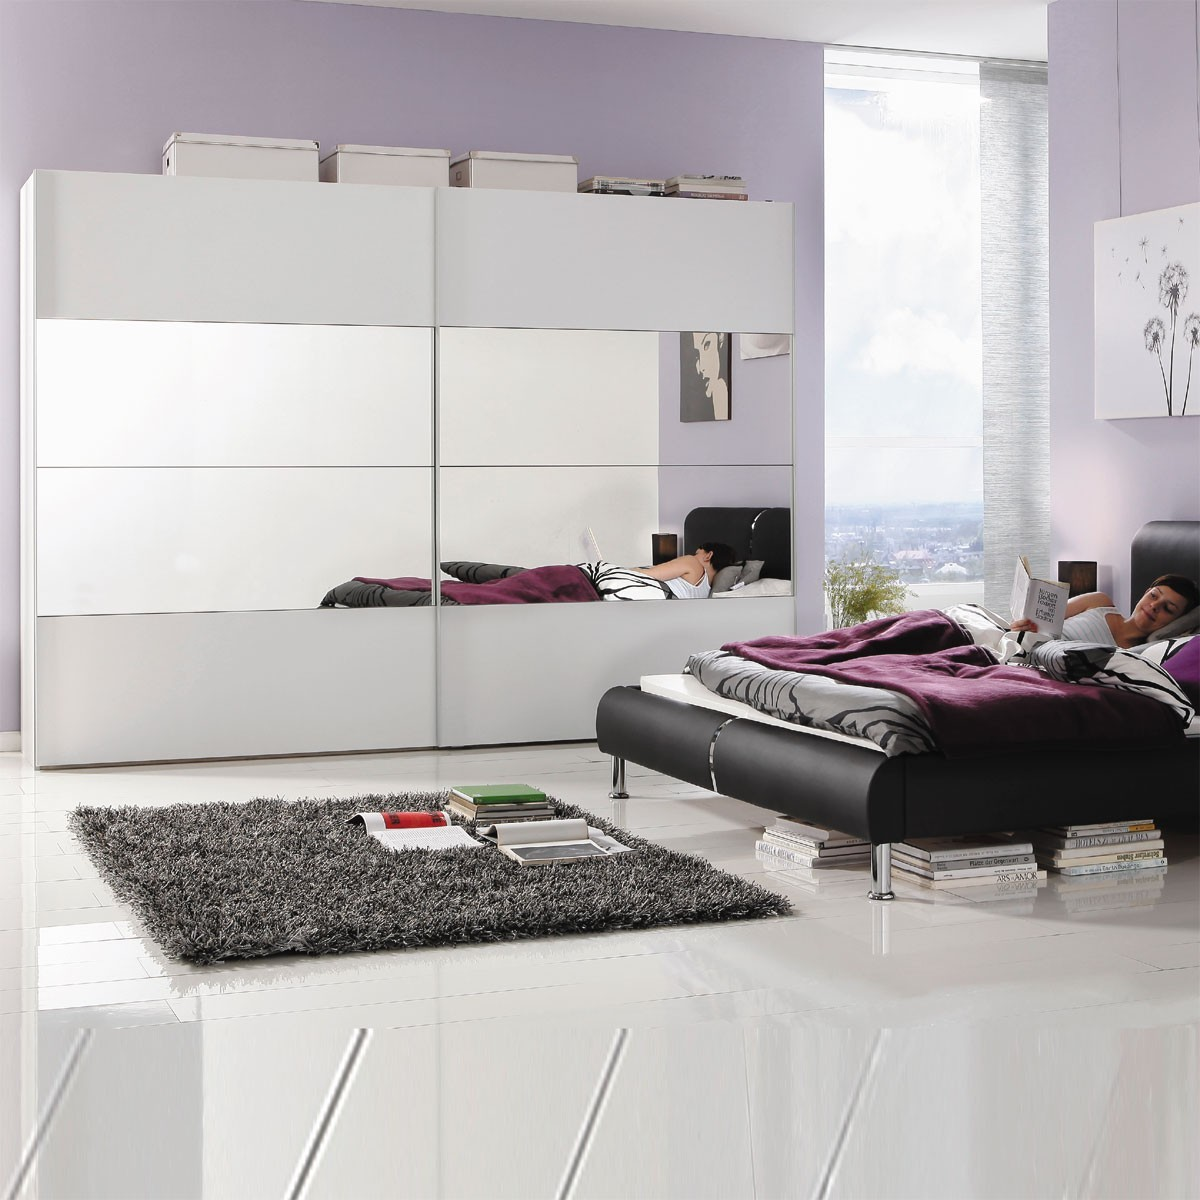 schwebet renschrank kleiderschrank schlafzimmer in wei. Black Bedroom Furniture Sets. Home Design Ideas